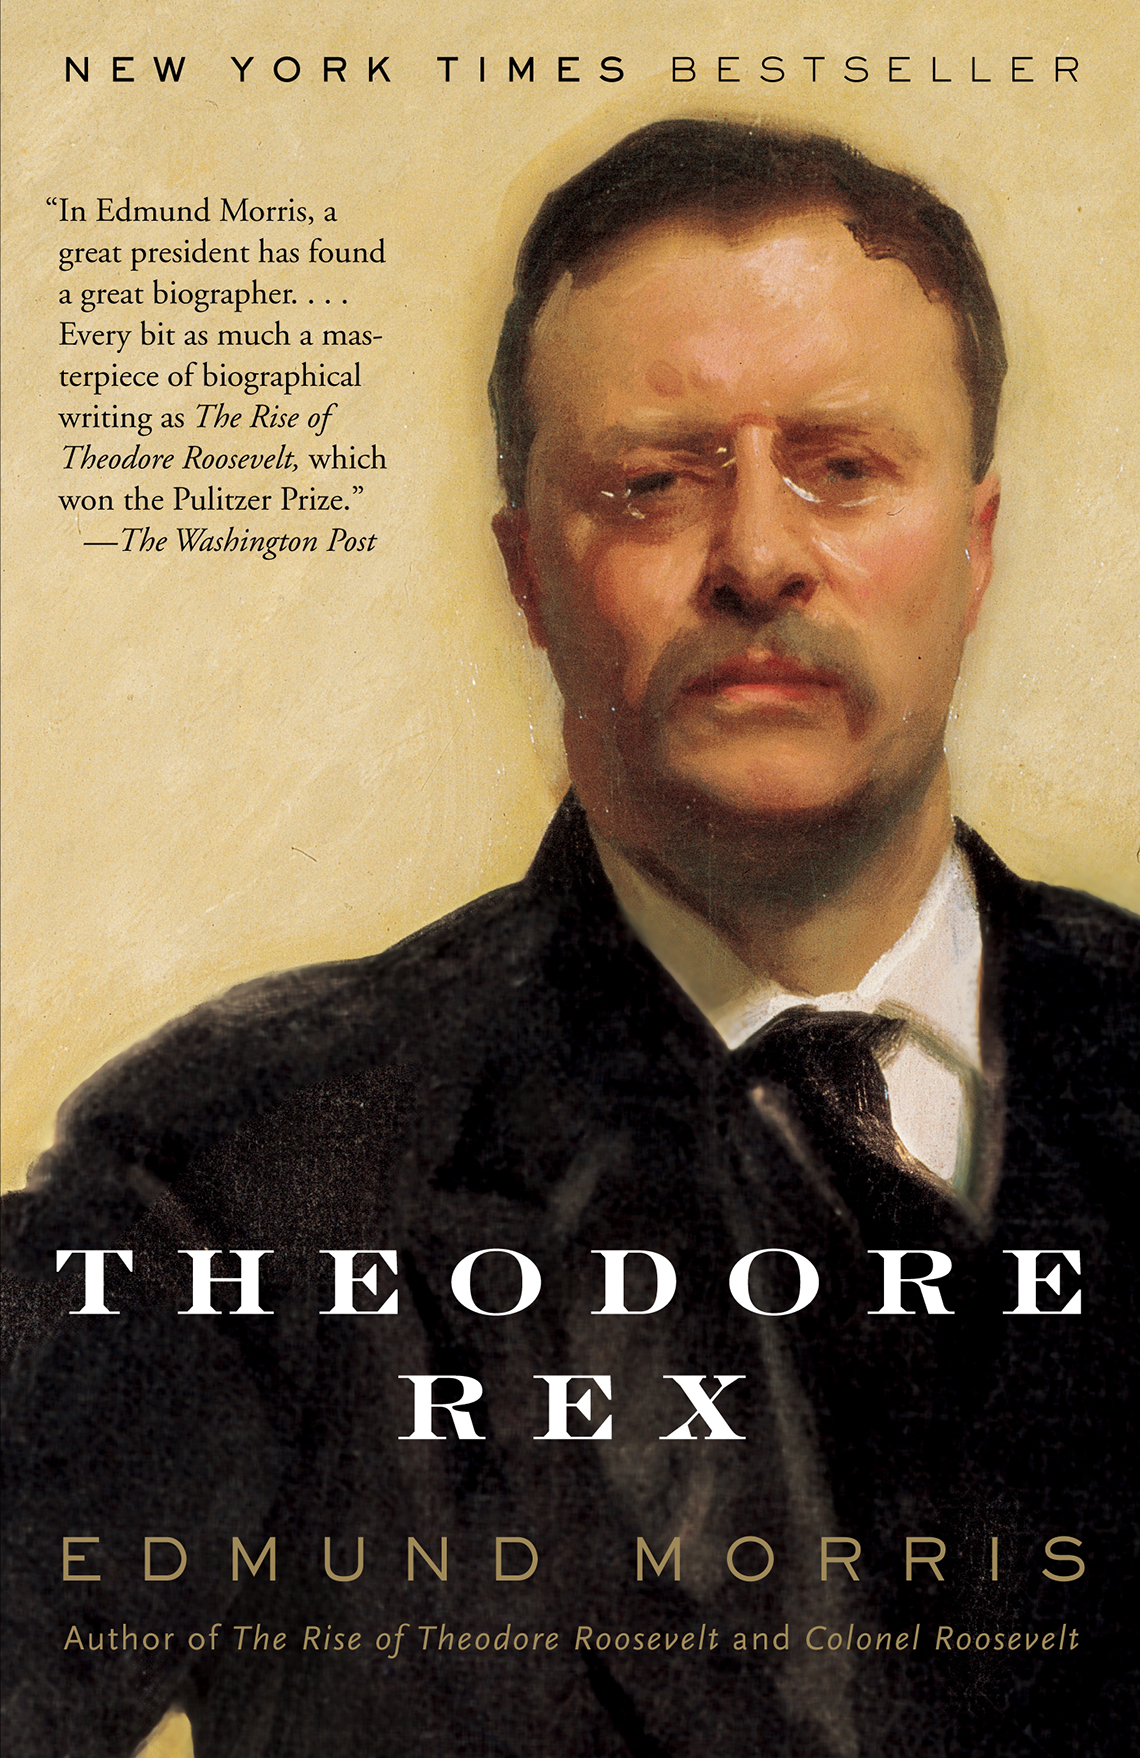 book cover of theodore rex by edmund morris